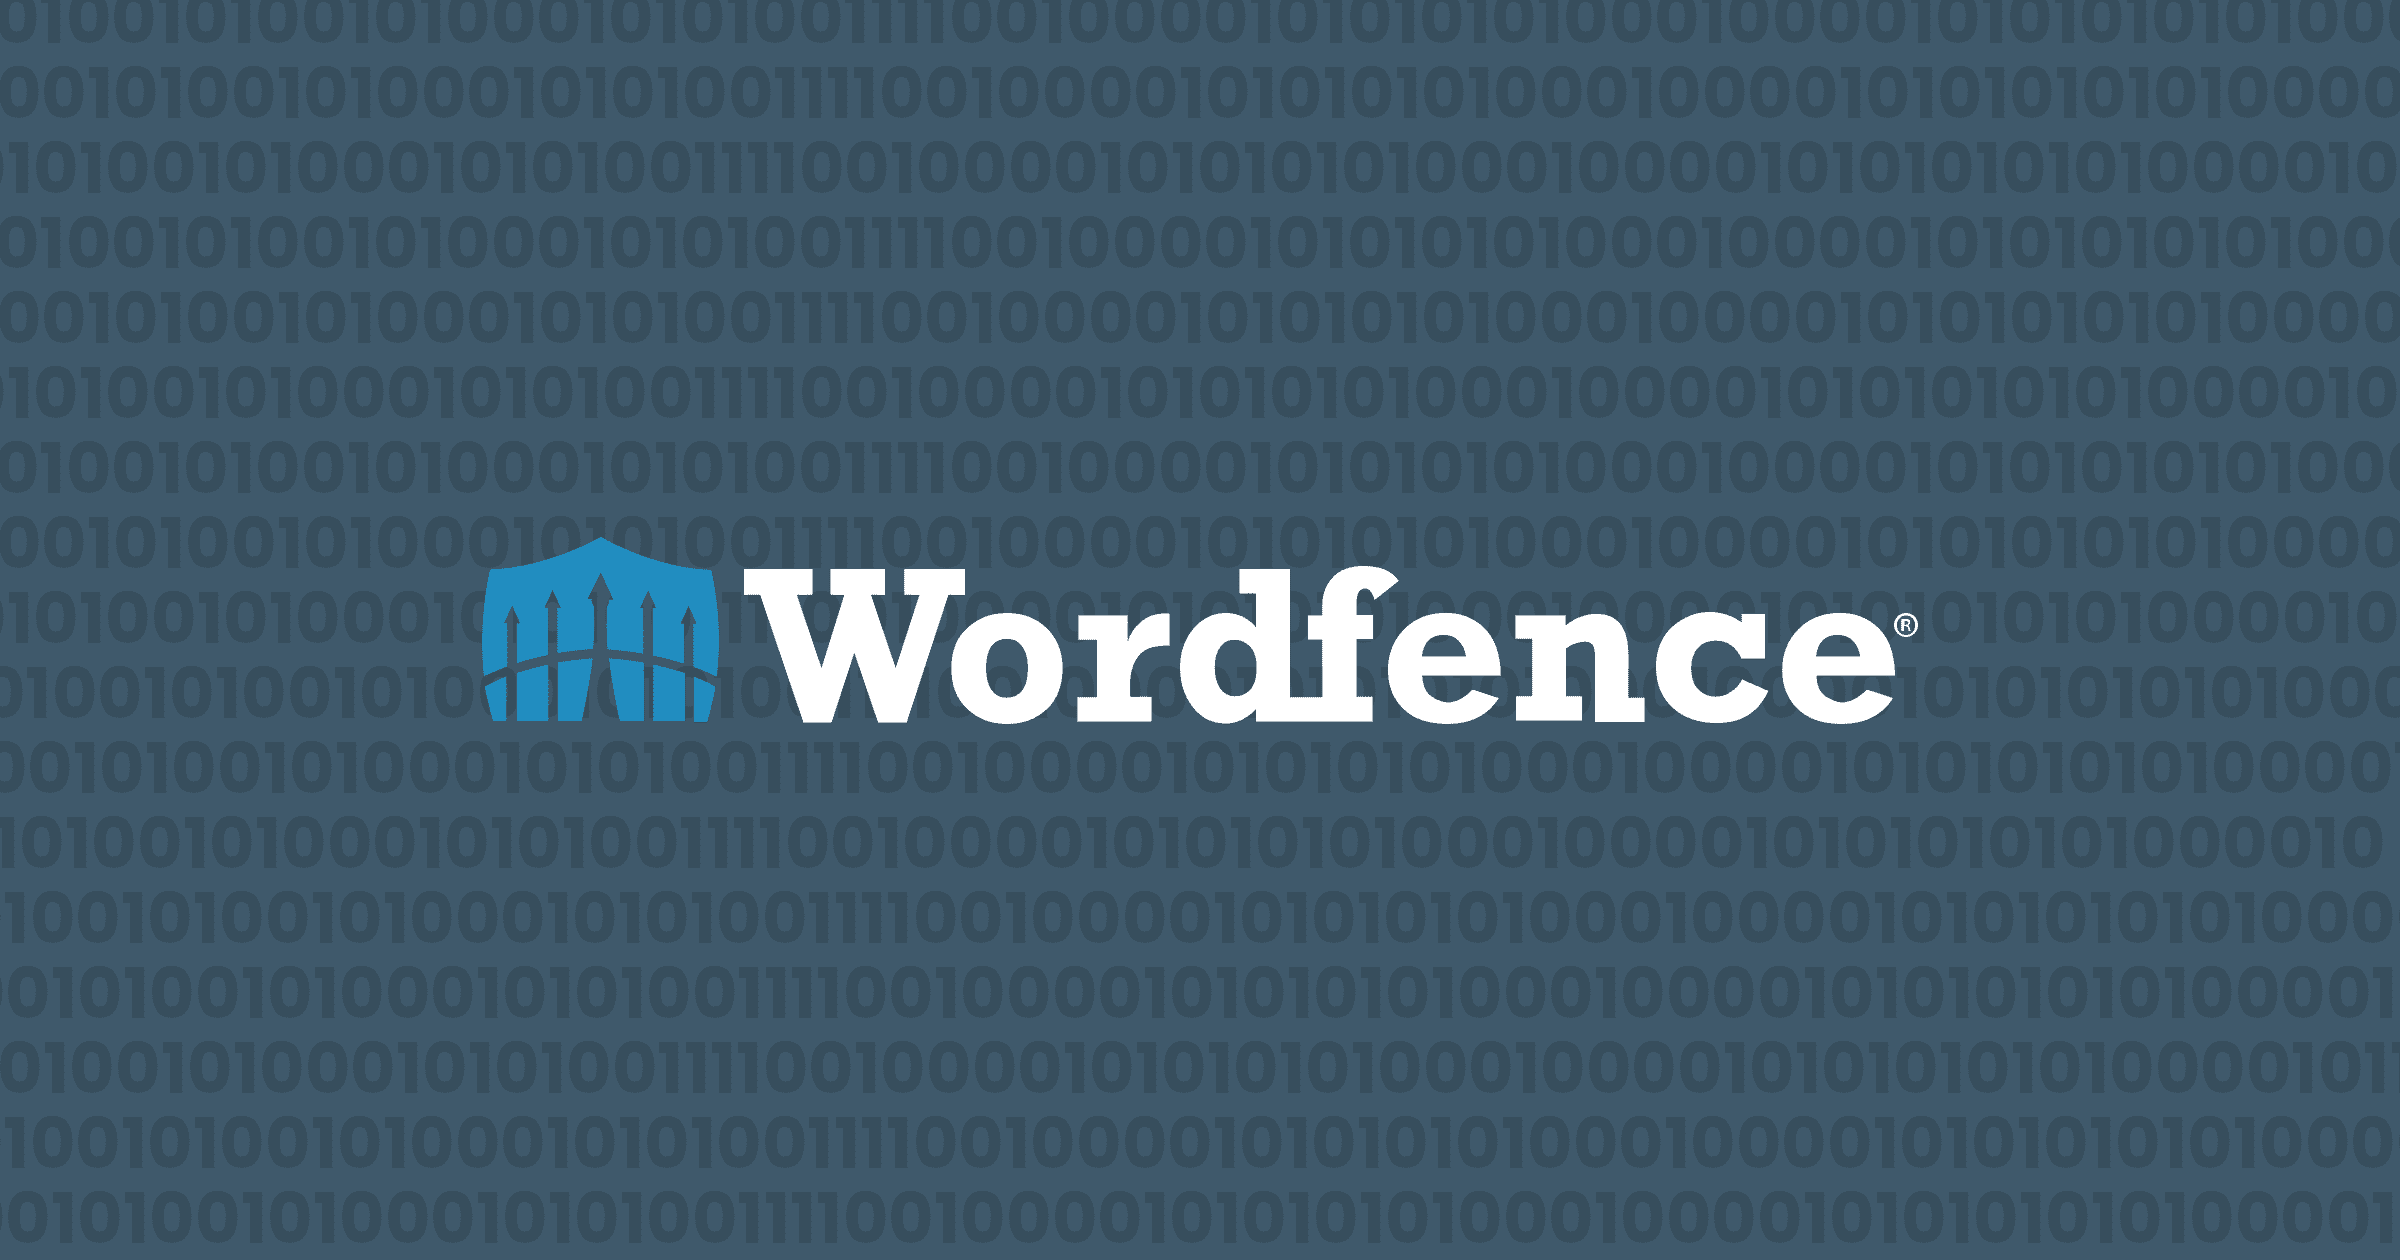 Making WordPress more secure with WordFence